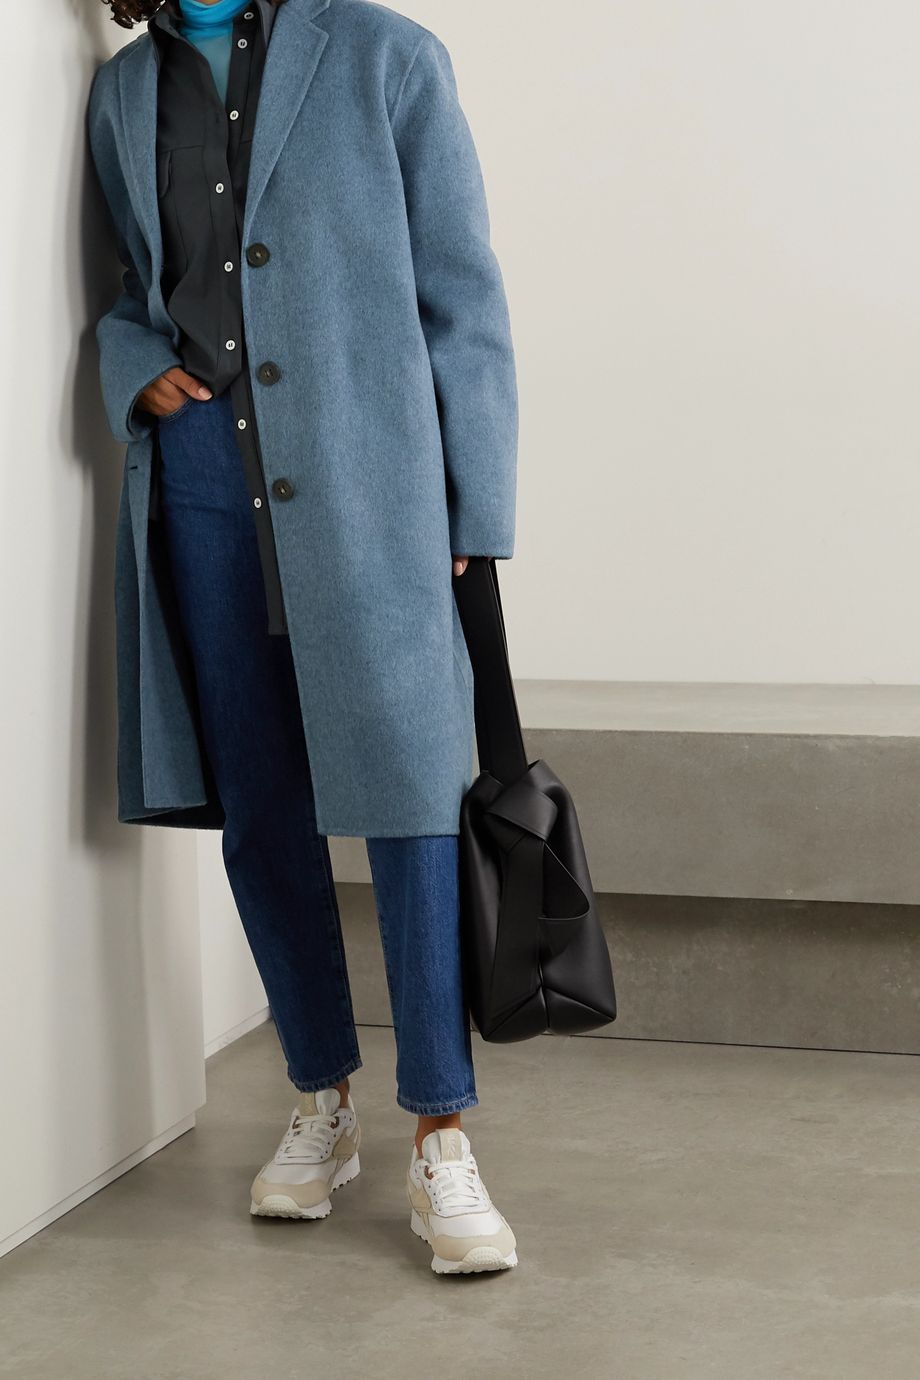 Acne Studios Oversized-Mantel aus melierter Wolle